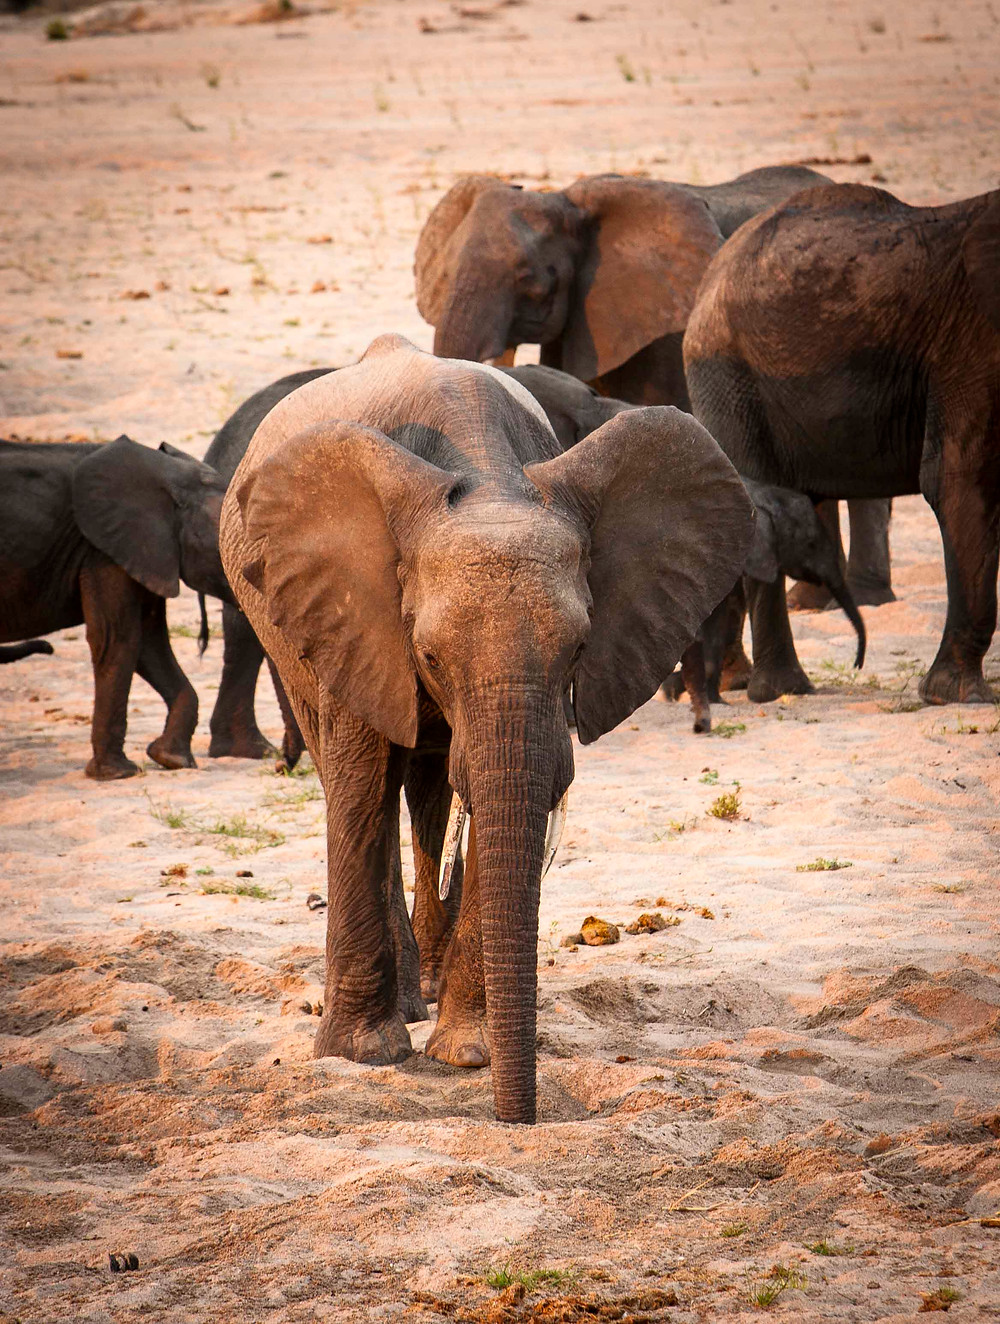 A young elephant drinks from a hole dug in the riverbed